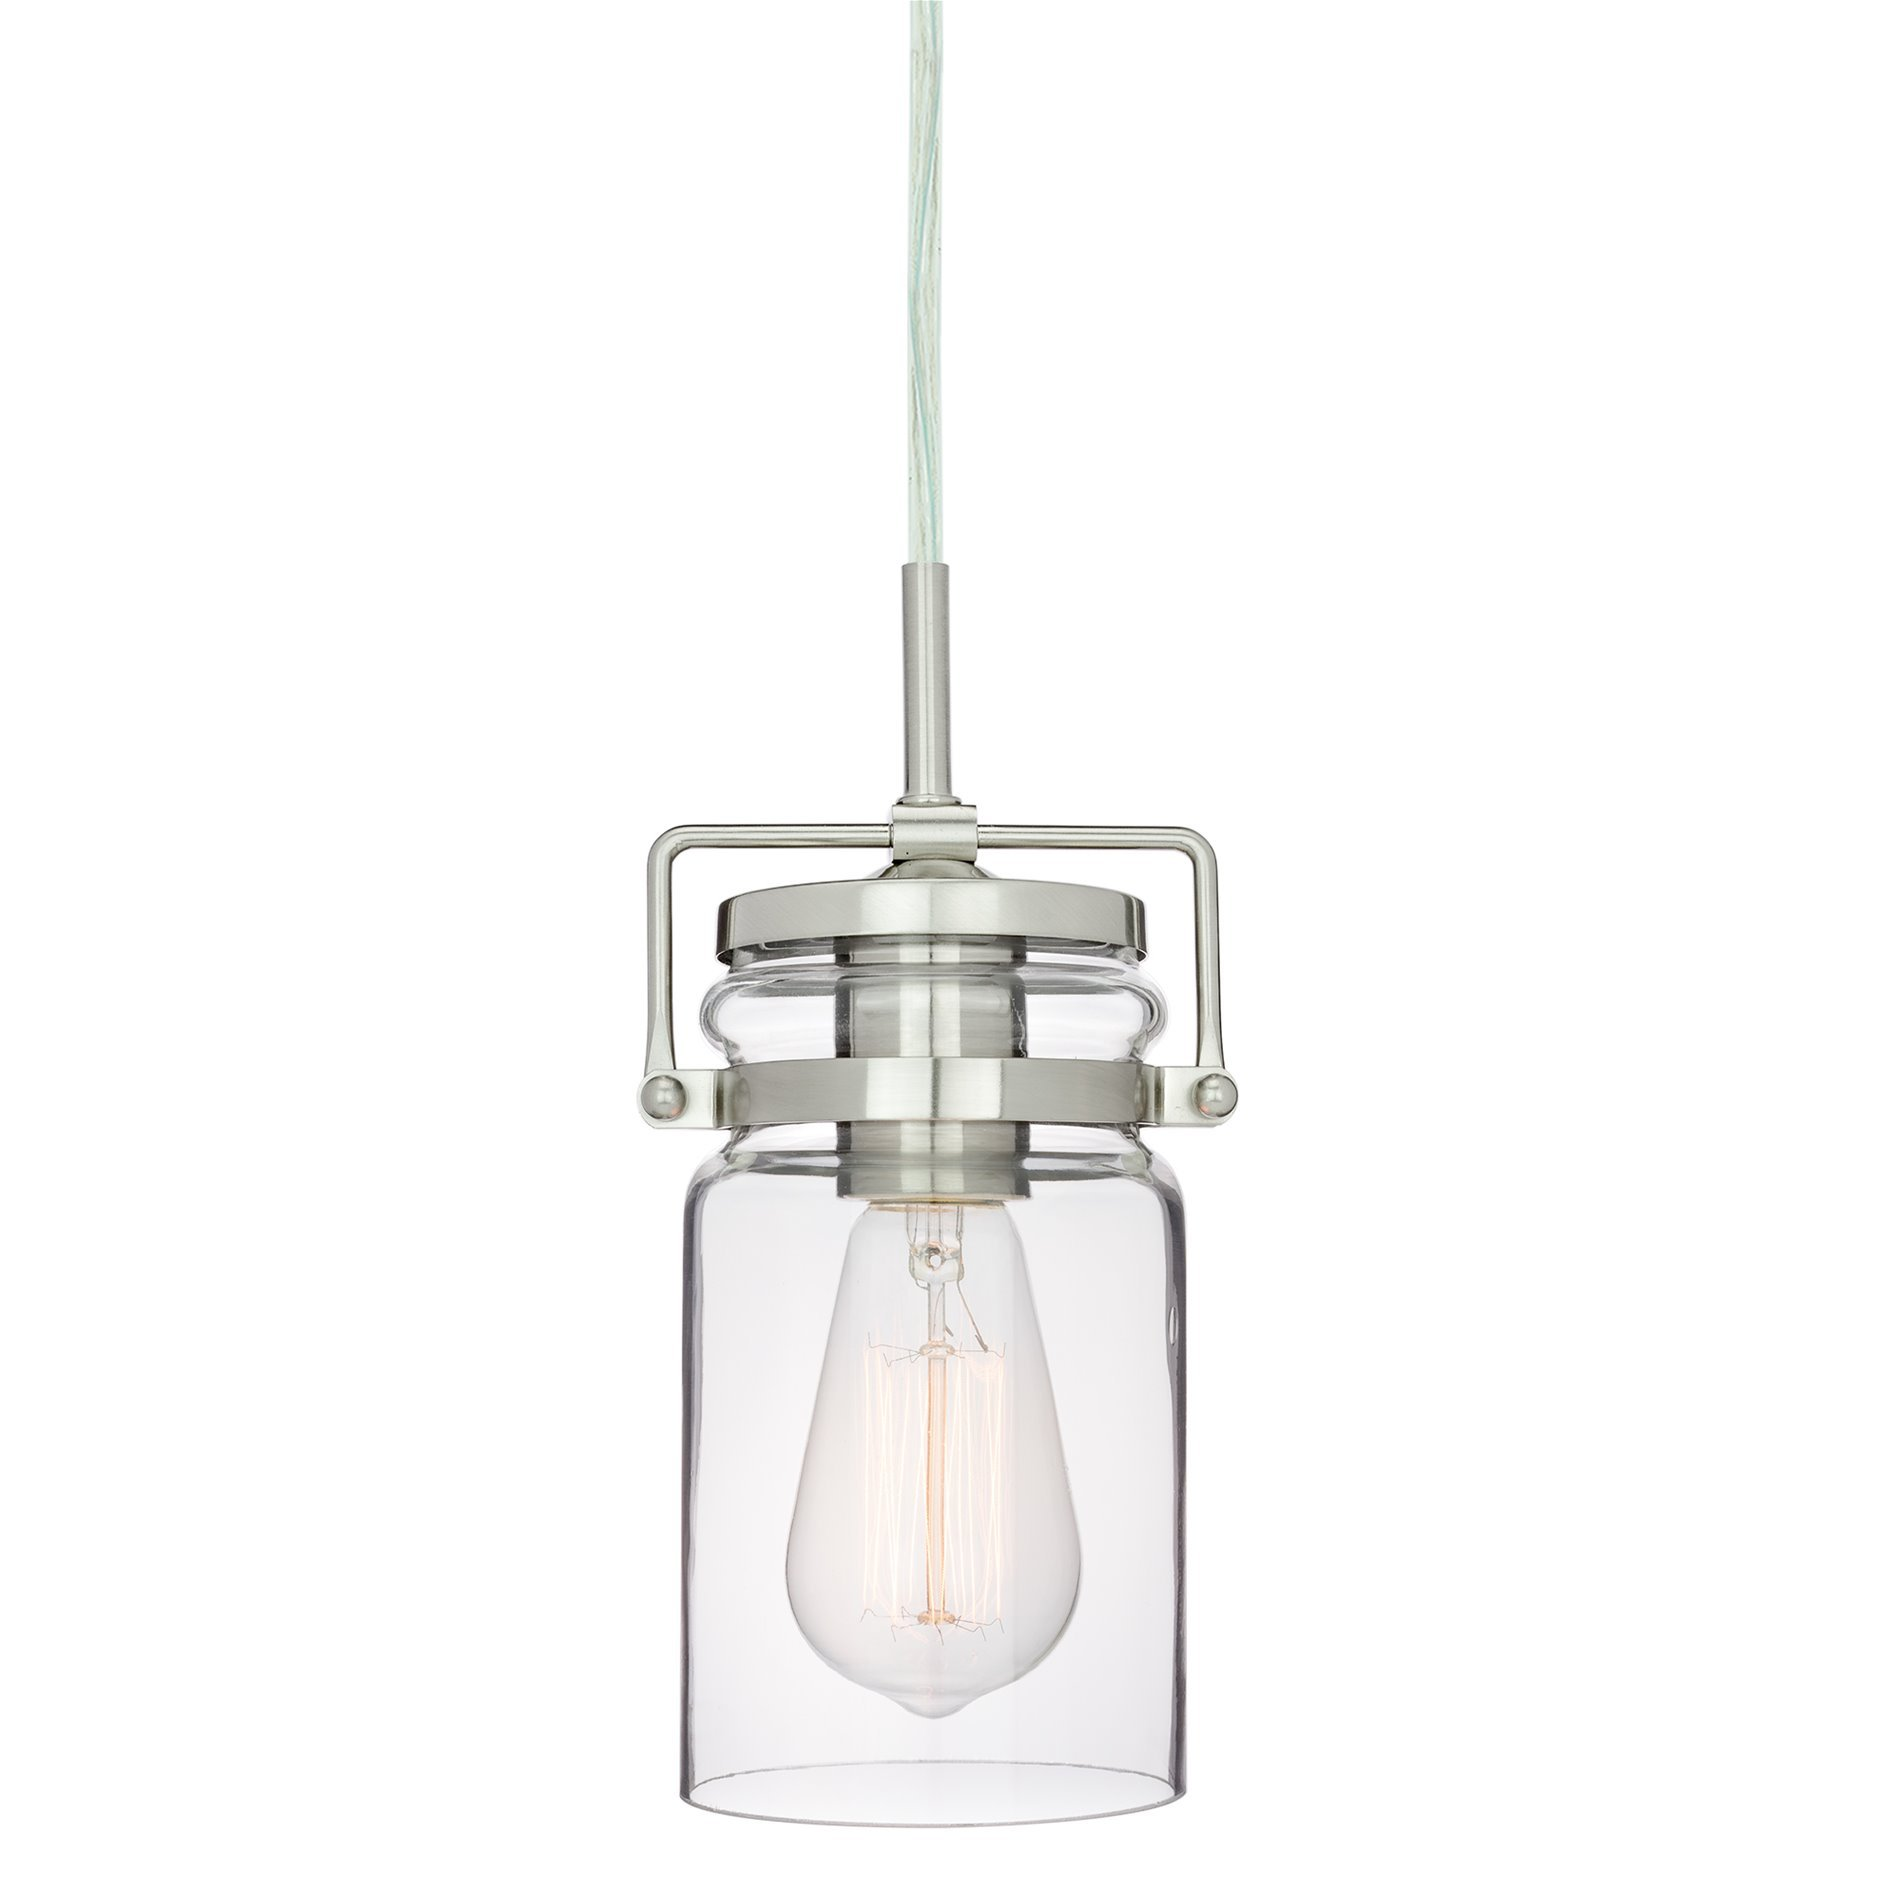 Revel Wyer 8'' Modern Industrial Mini Glass Jar Wired Pendant Light, Energy Efficient, Eco-Friendly, Brushed Nickel Finish by Kira Home